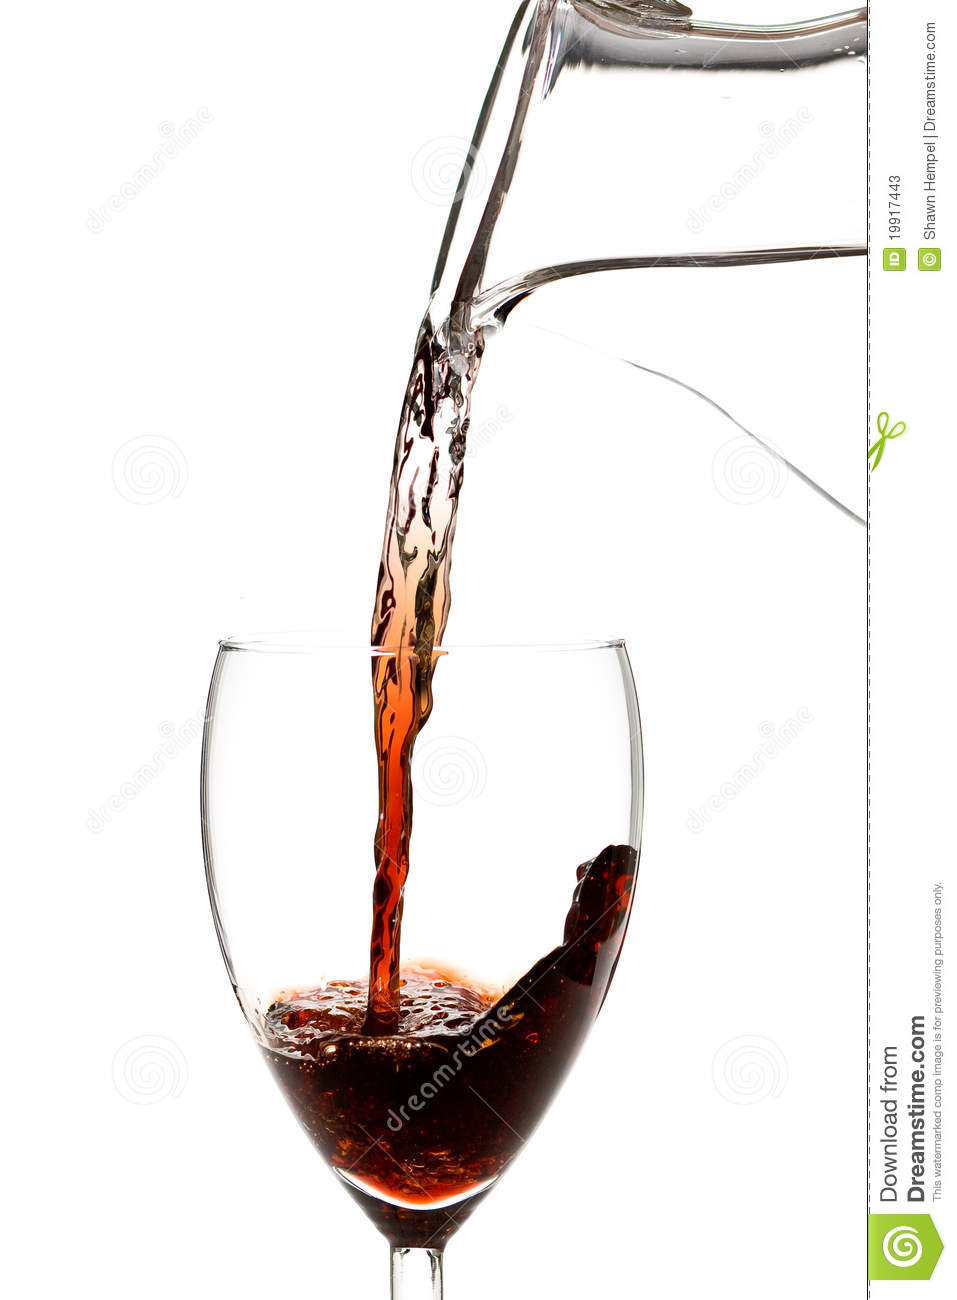 Water Into Wine Stock Photos - Image: 19917443